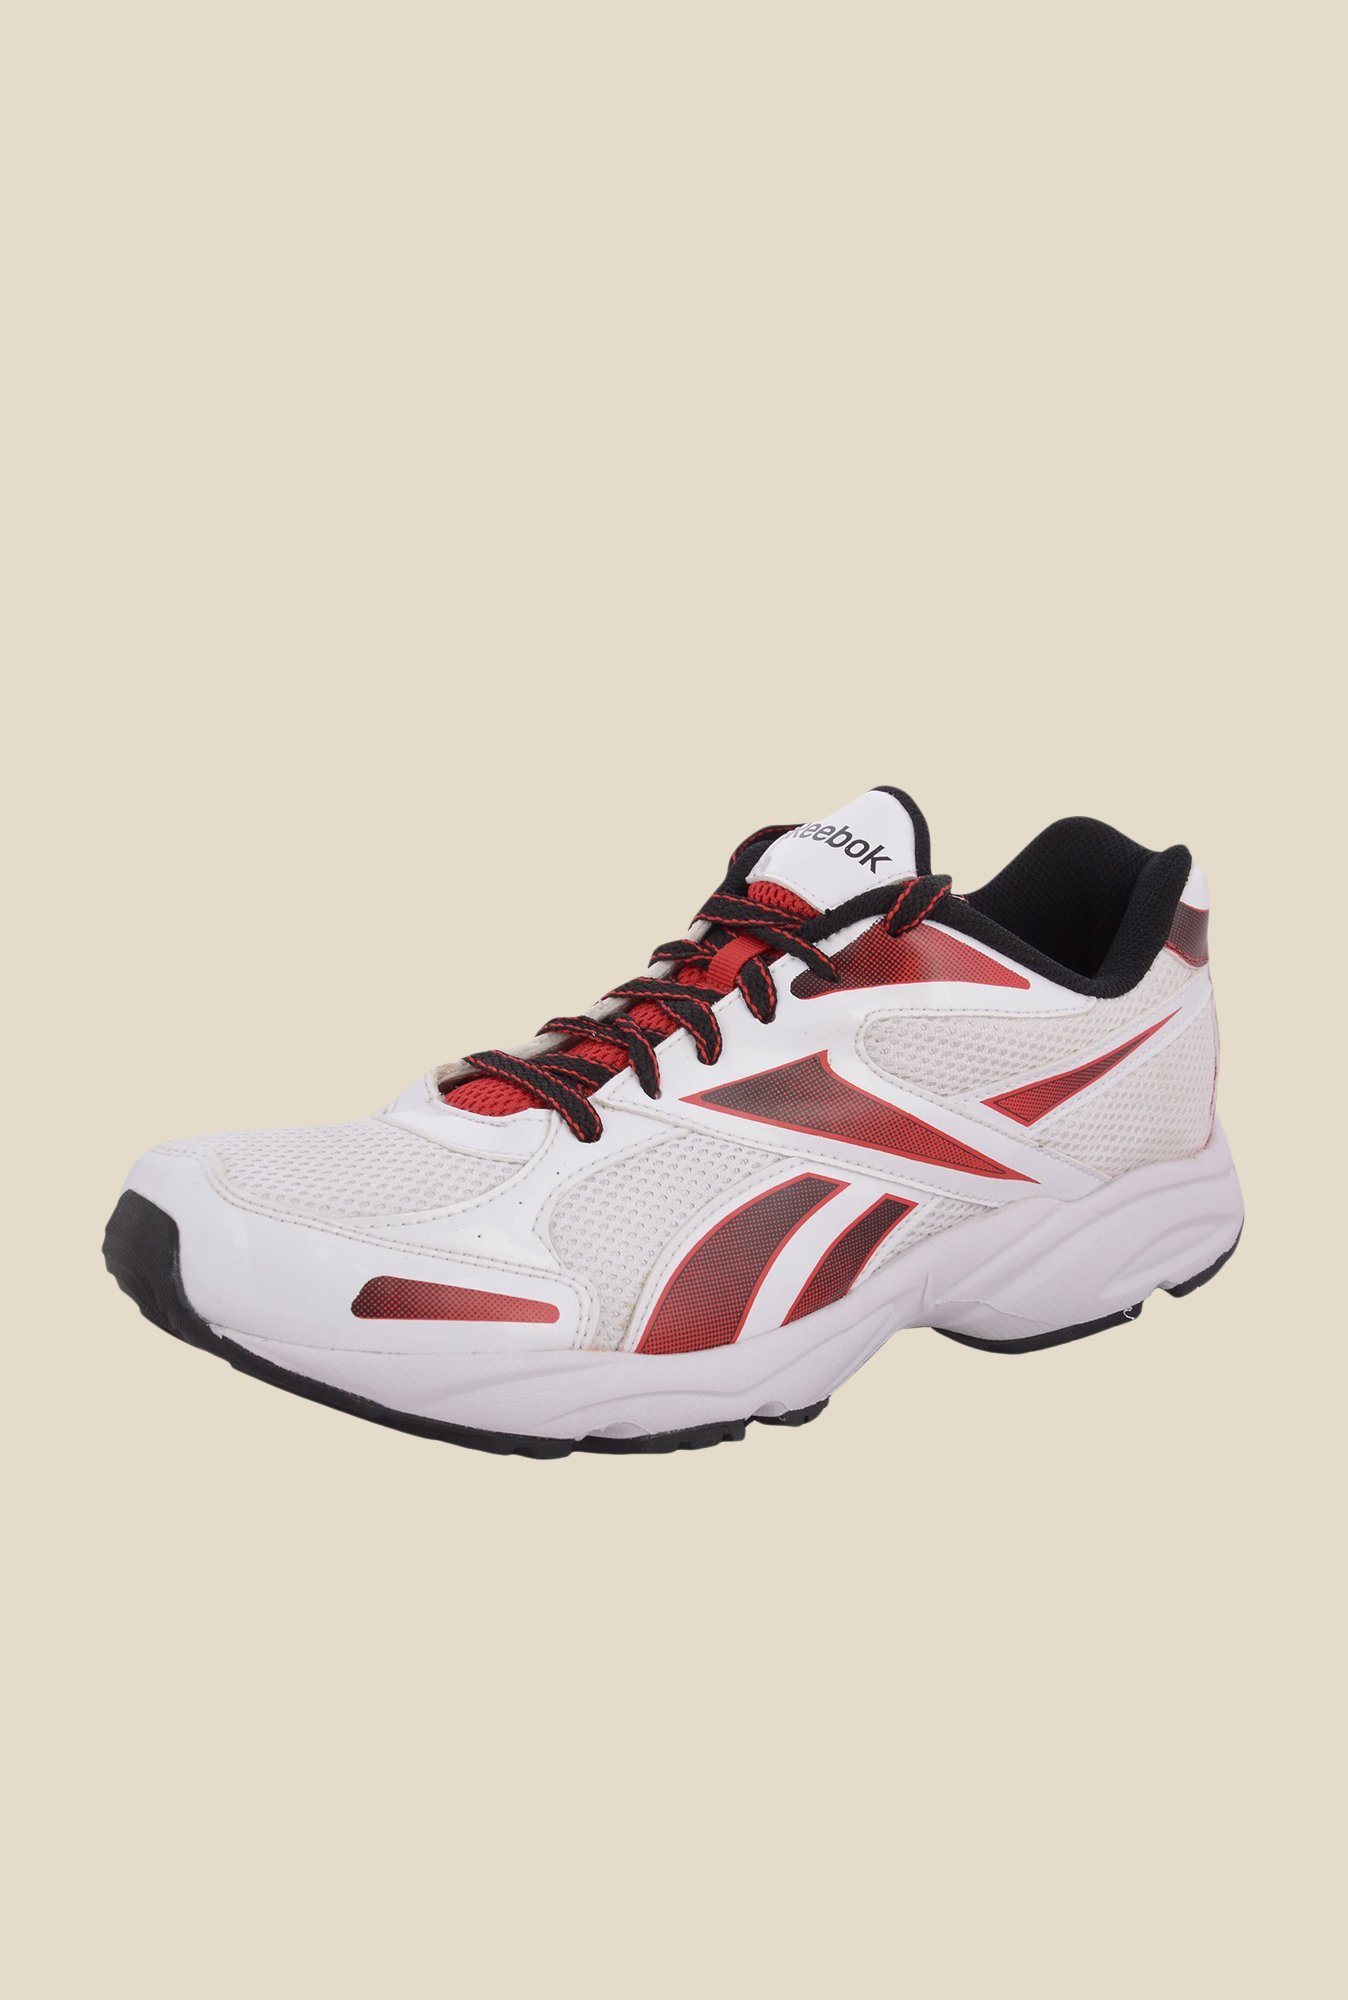 Reebok White & Red Running Shoes